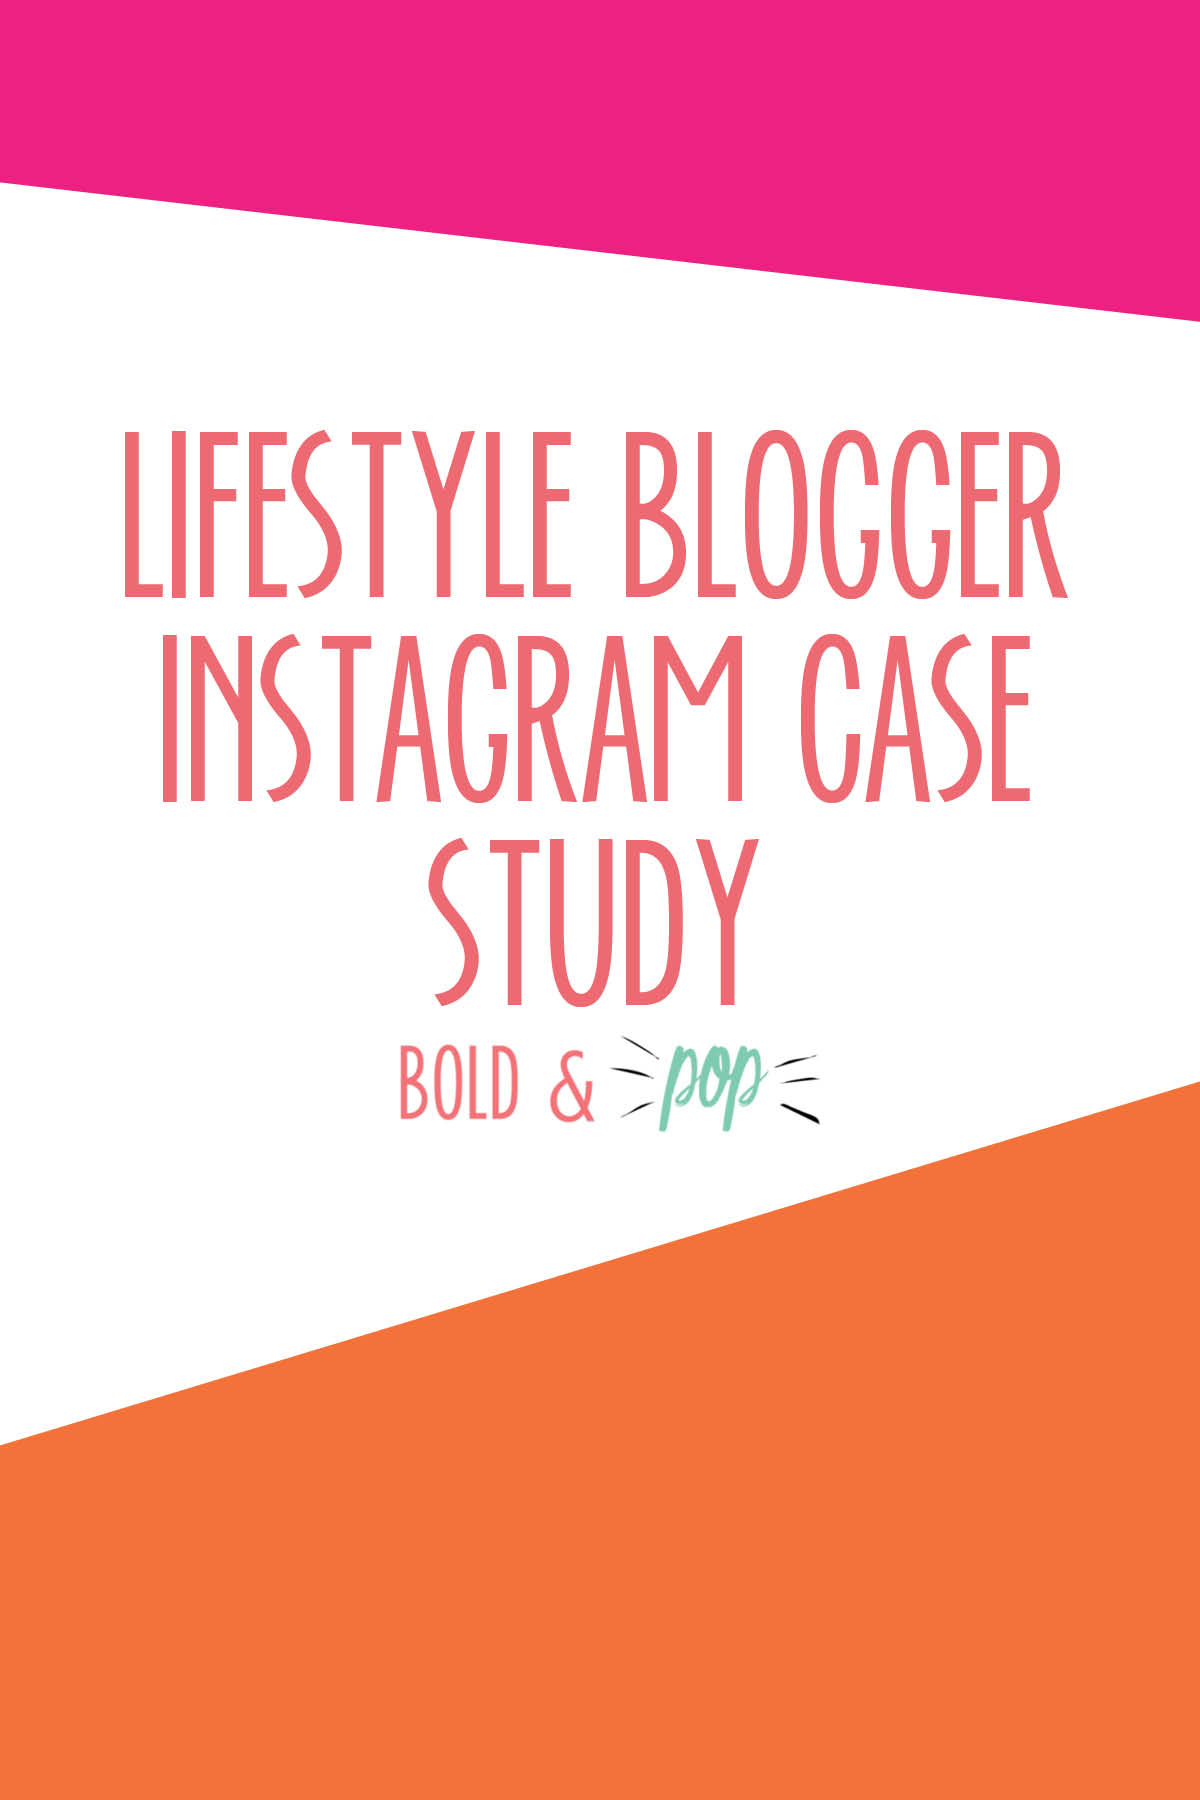 Bold & Pop : Social Media Agency Lifestyle Blogger Instagram Case Study